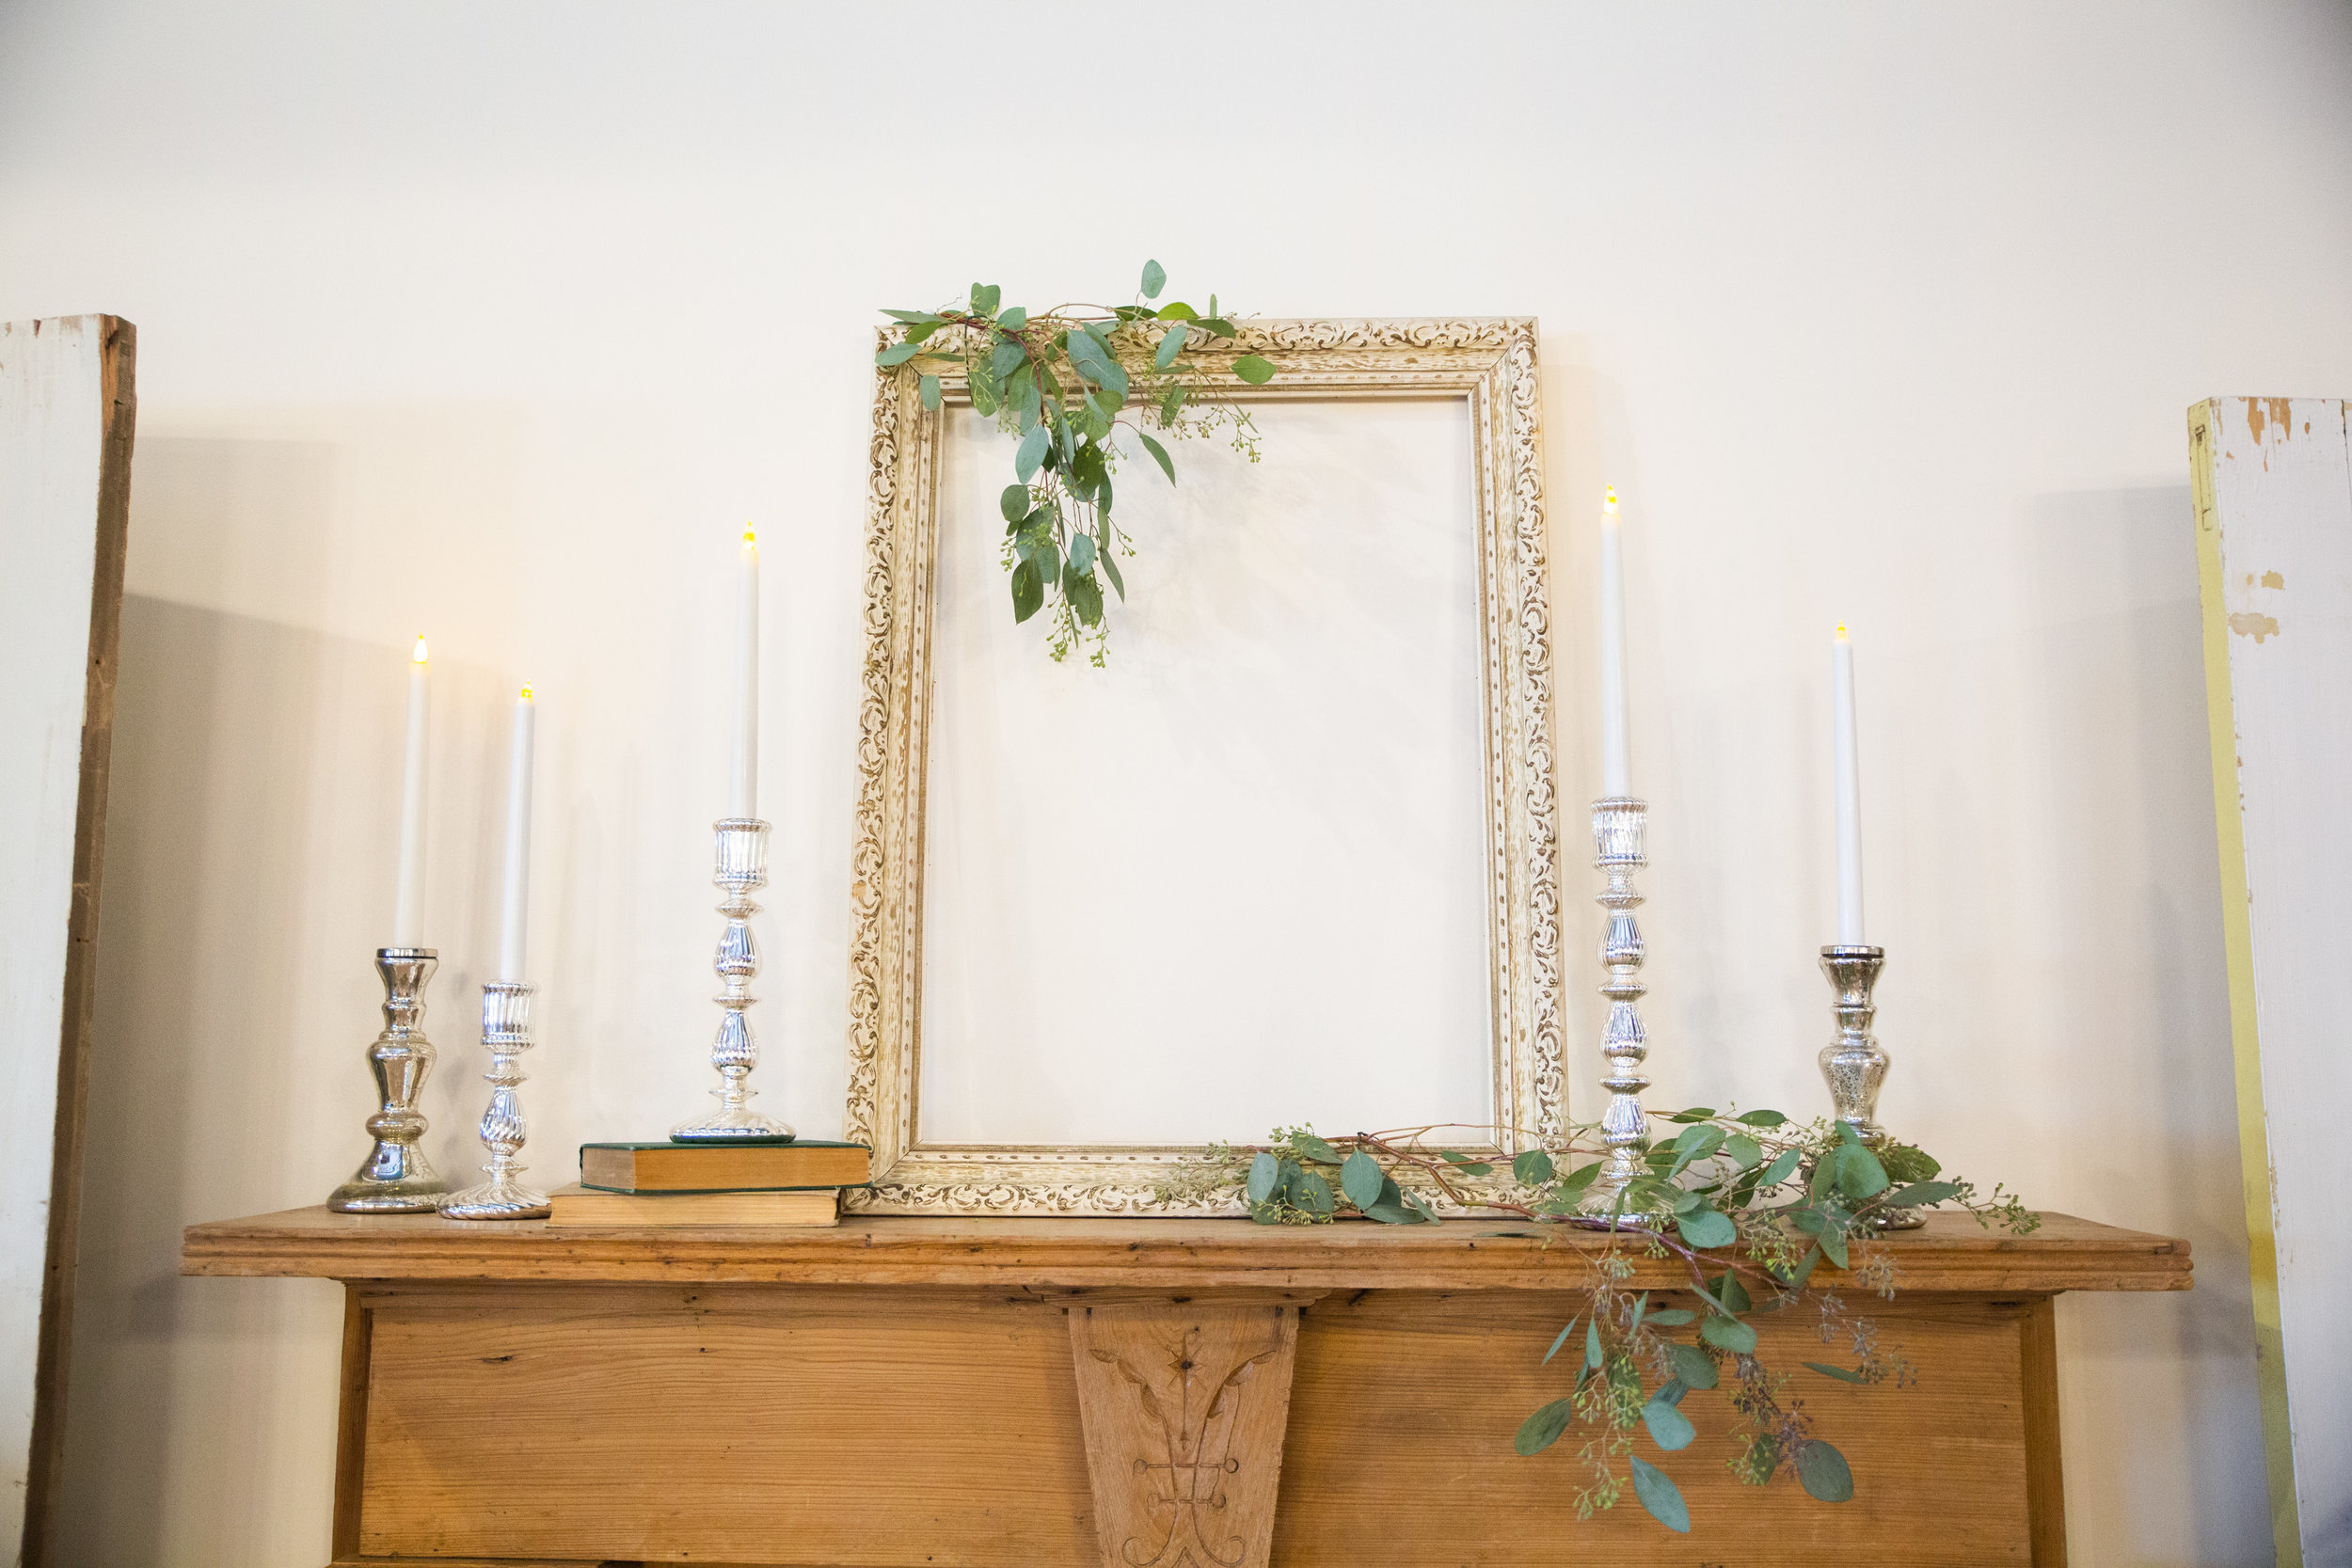 eucalyptus decor and tall silver candlesticks with gold photo frames Des Moines wedding rentals